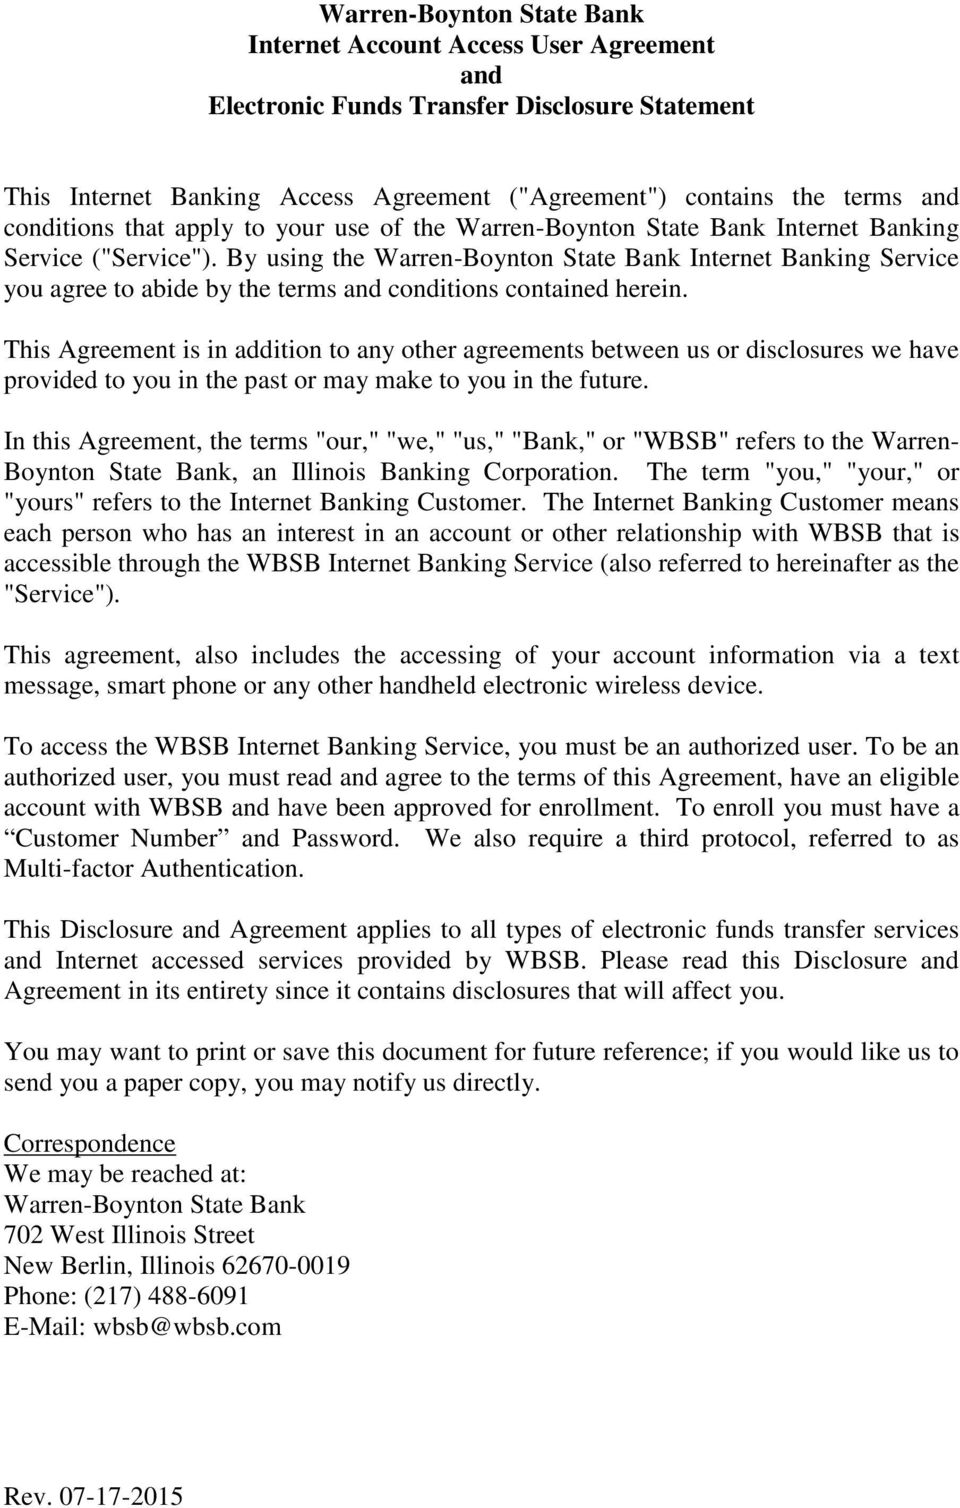 By using the Warren-Boynton State Bank Internet Banking Service you agree to abide by the terms and conditions contained herein.